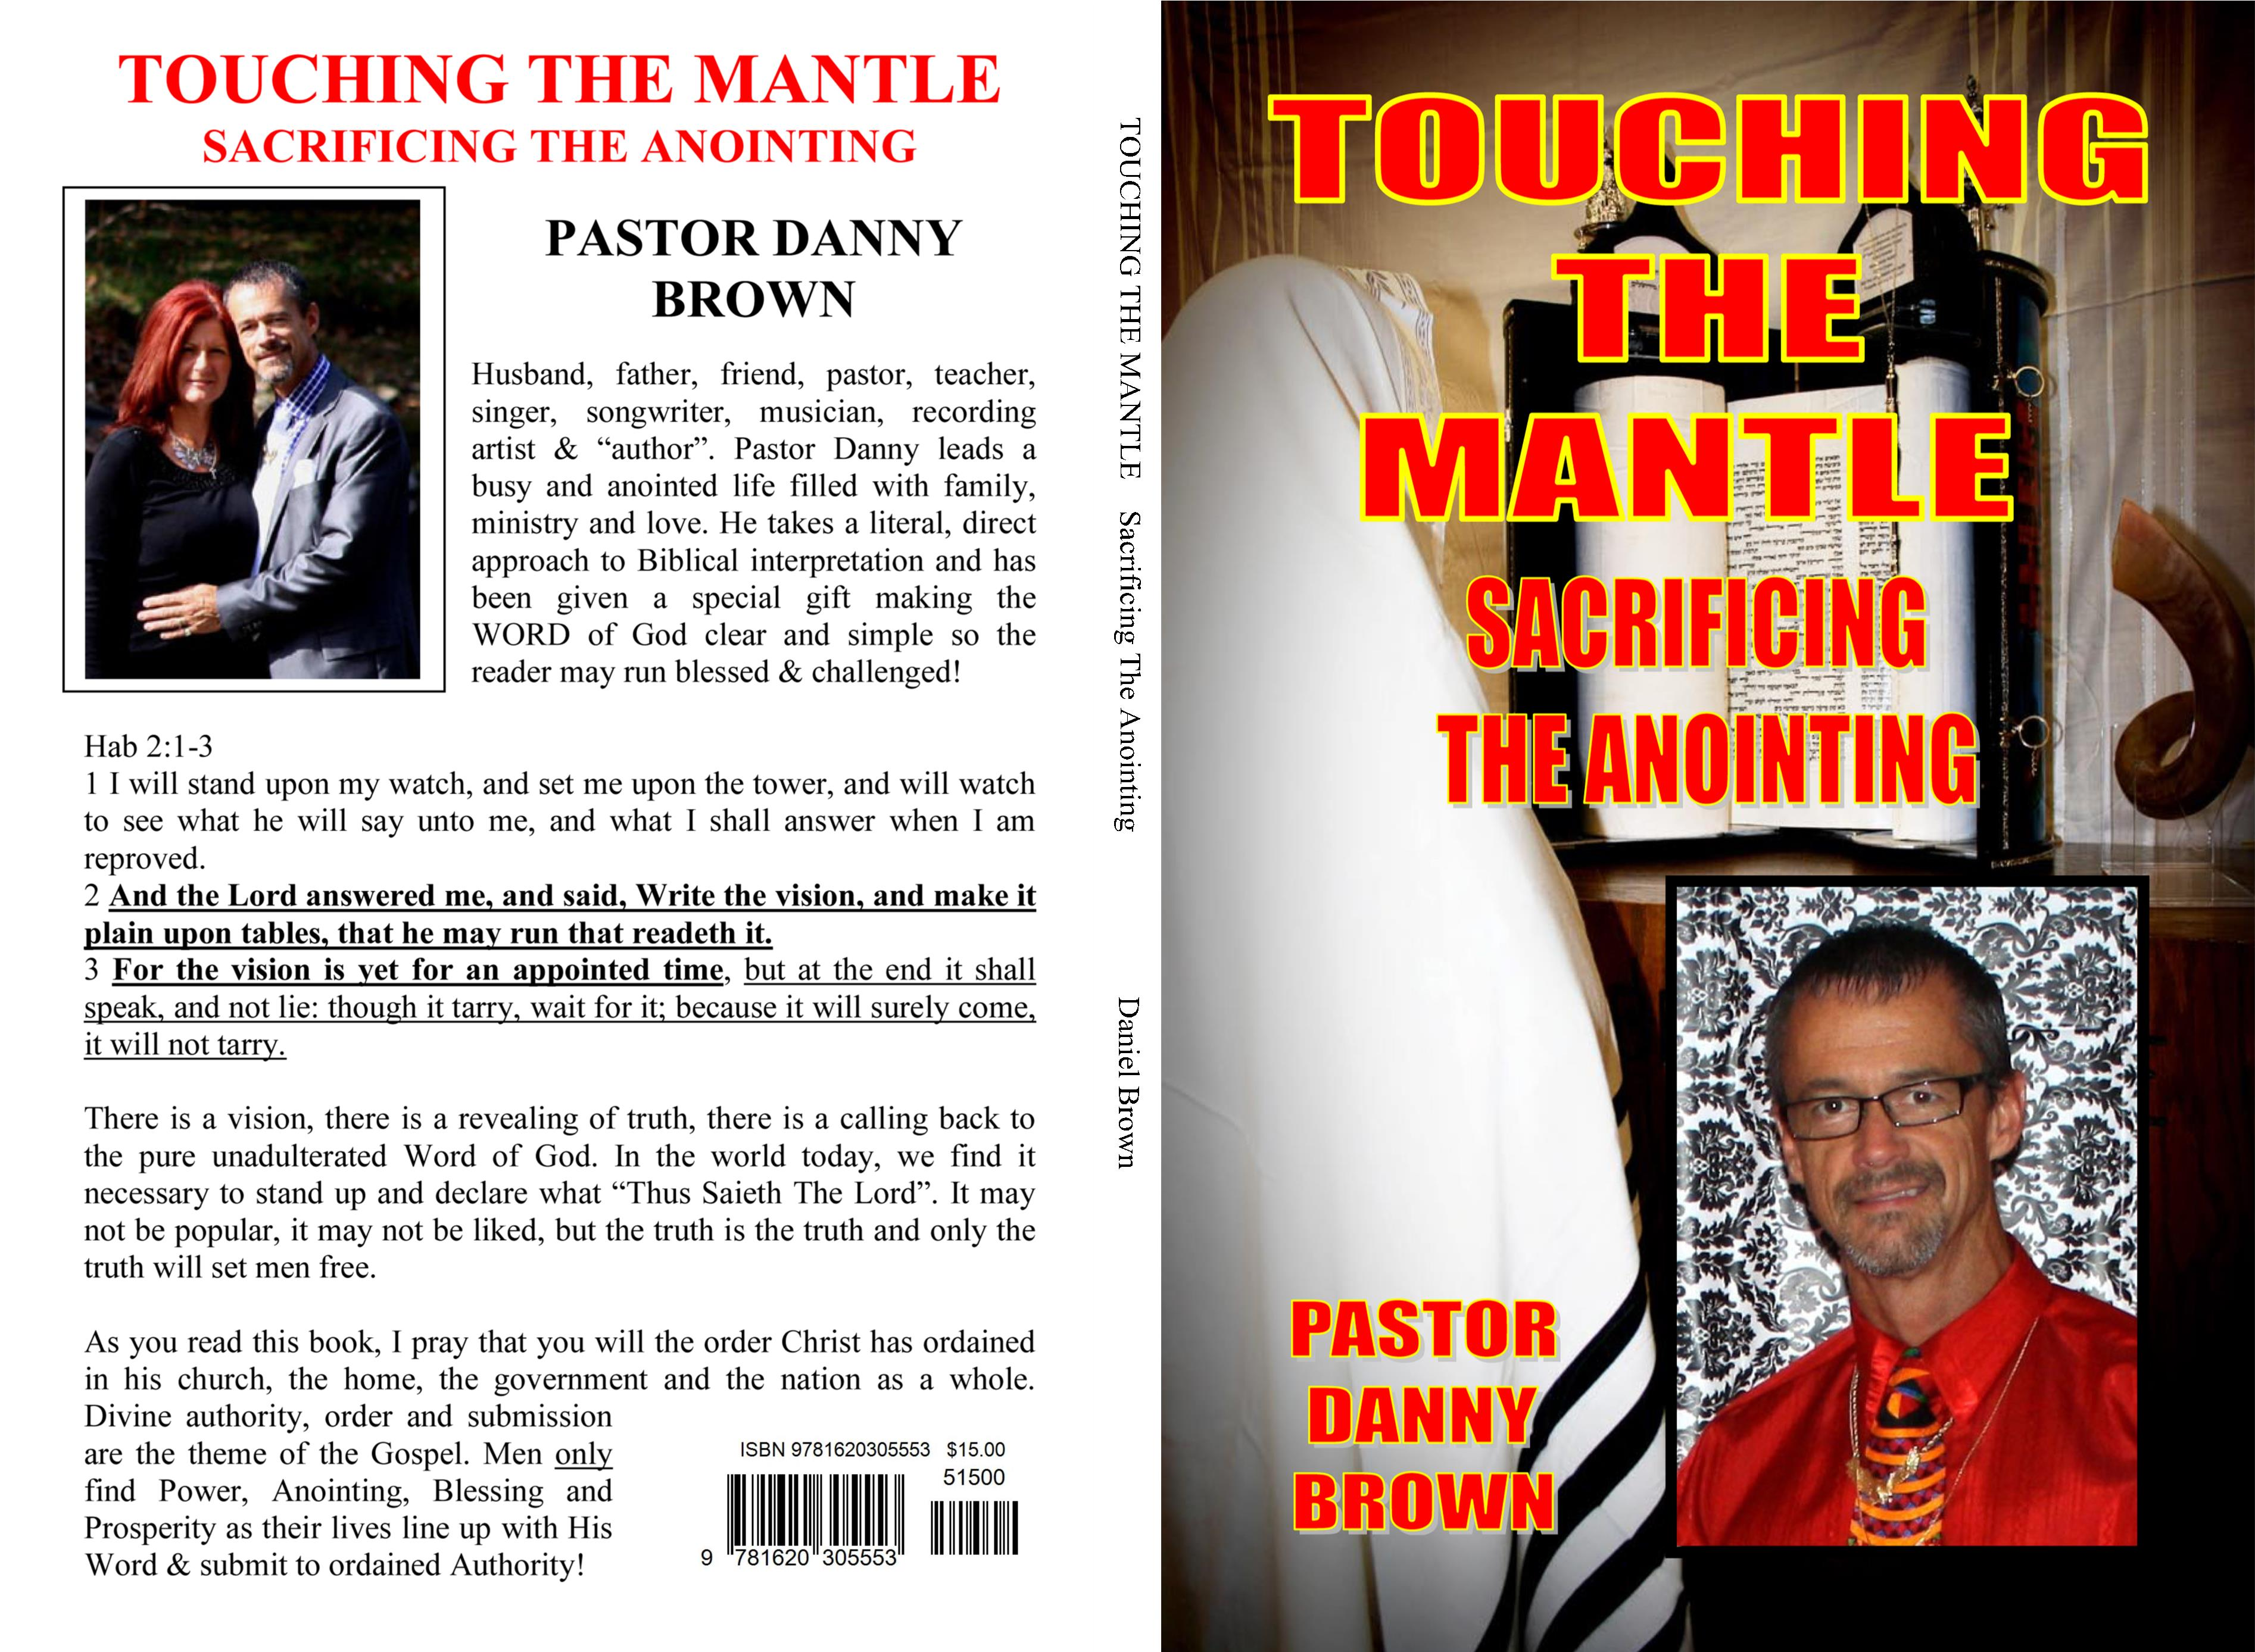 TOUCHING THE MANTLE Sacrificing The Anointing by Daniel Brown